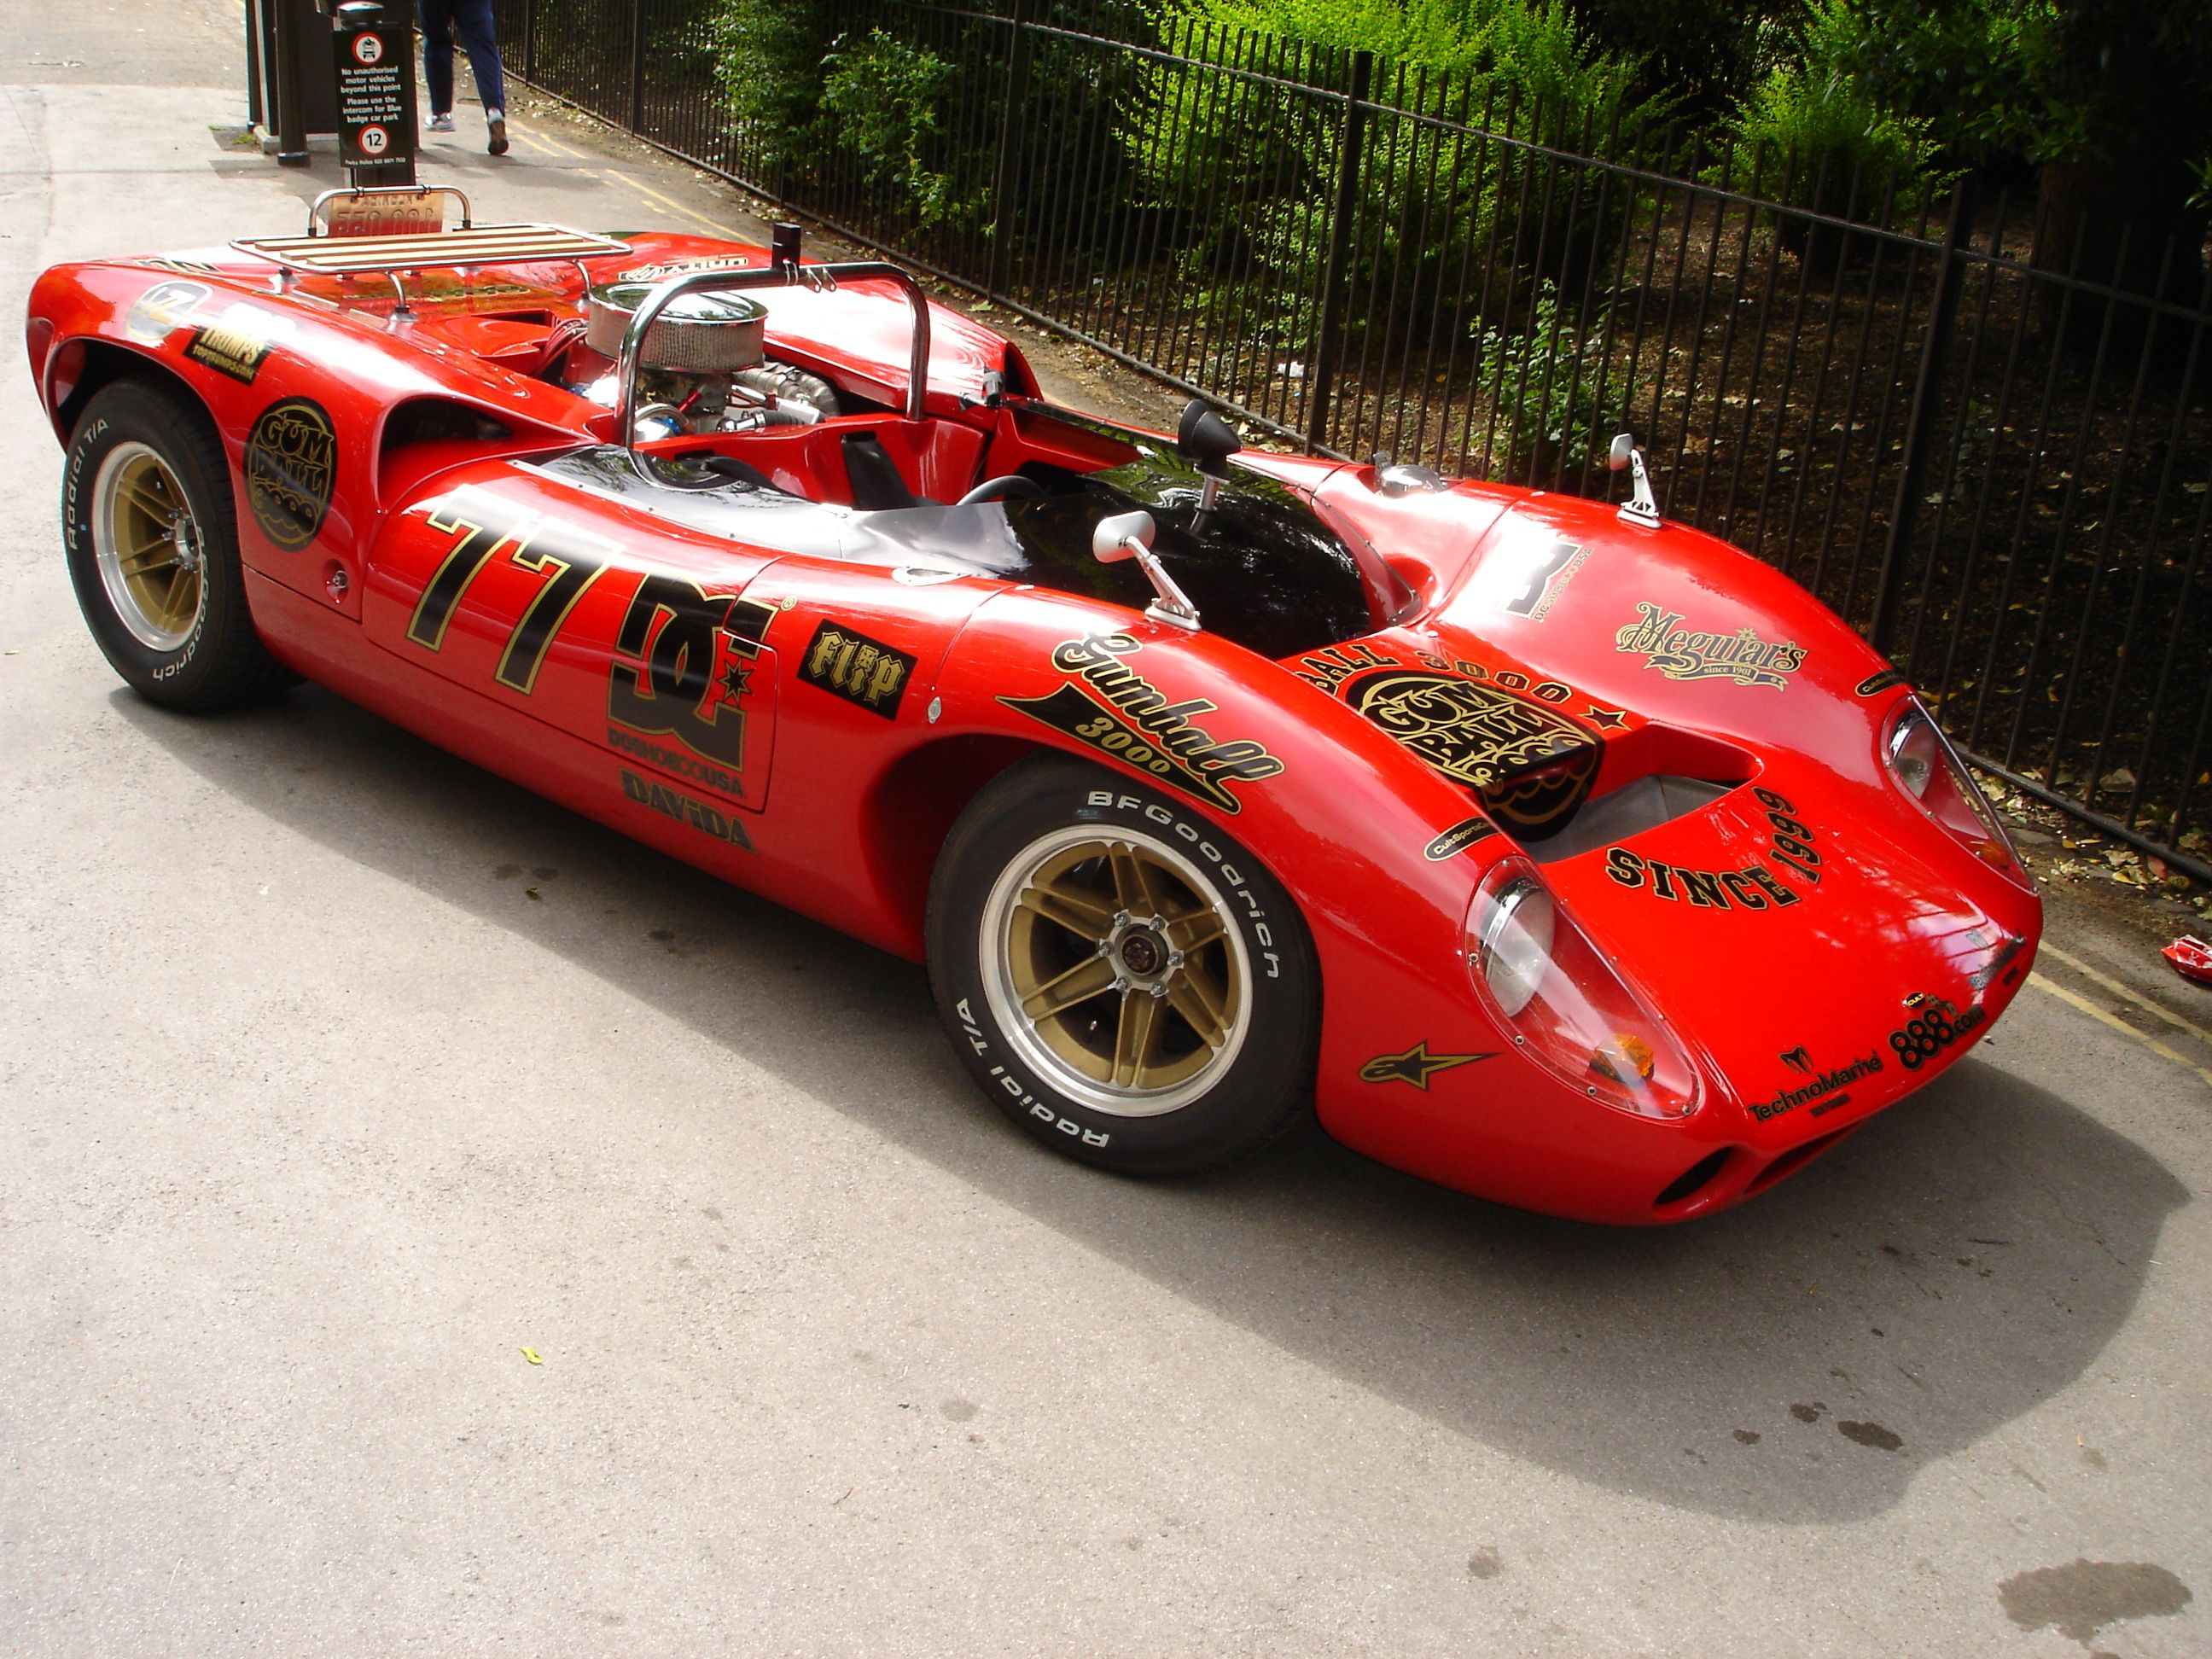 Lola T70 SL73/130 with a Spyder Body   Racing   Pinterest   Classic ...